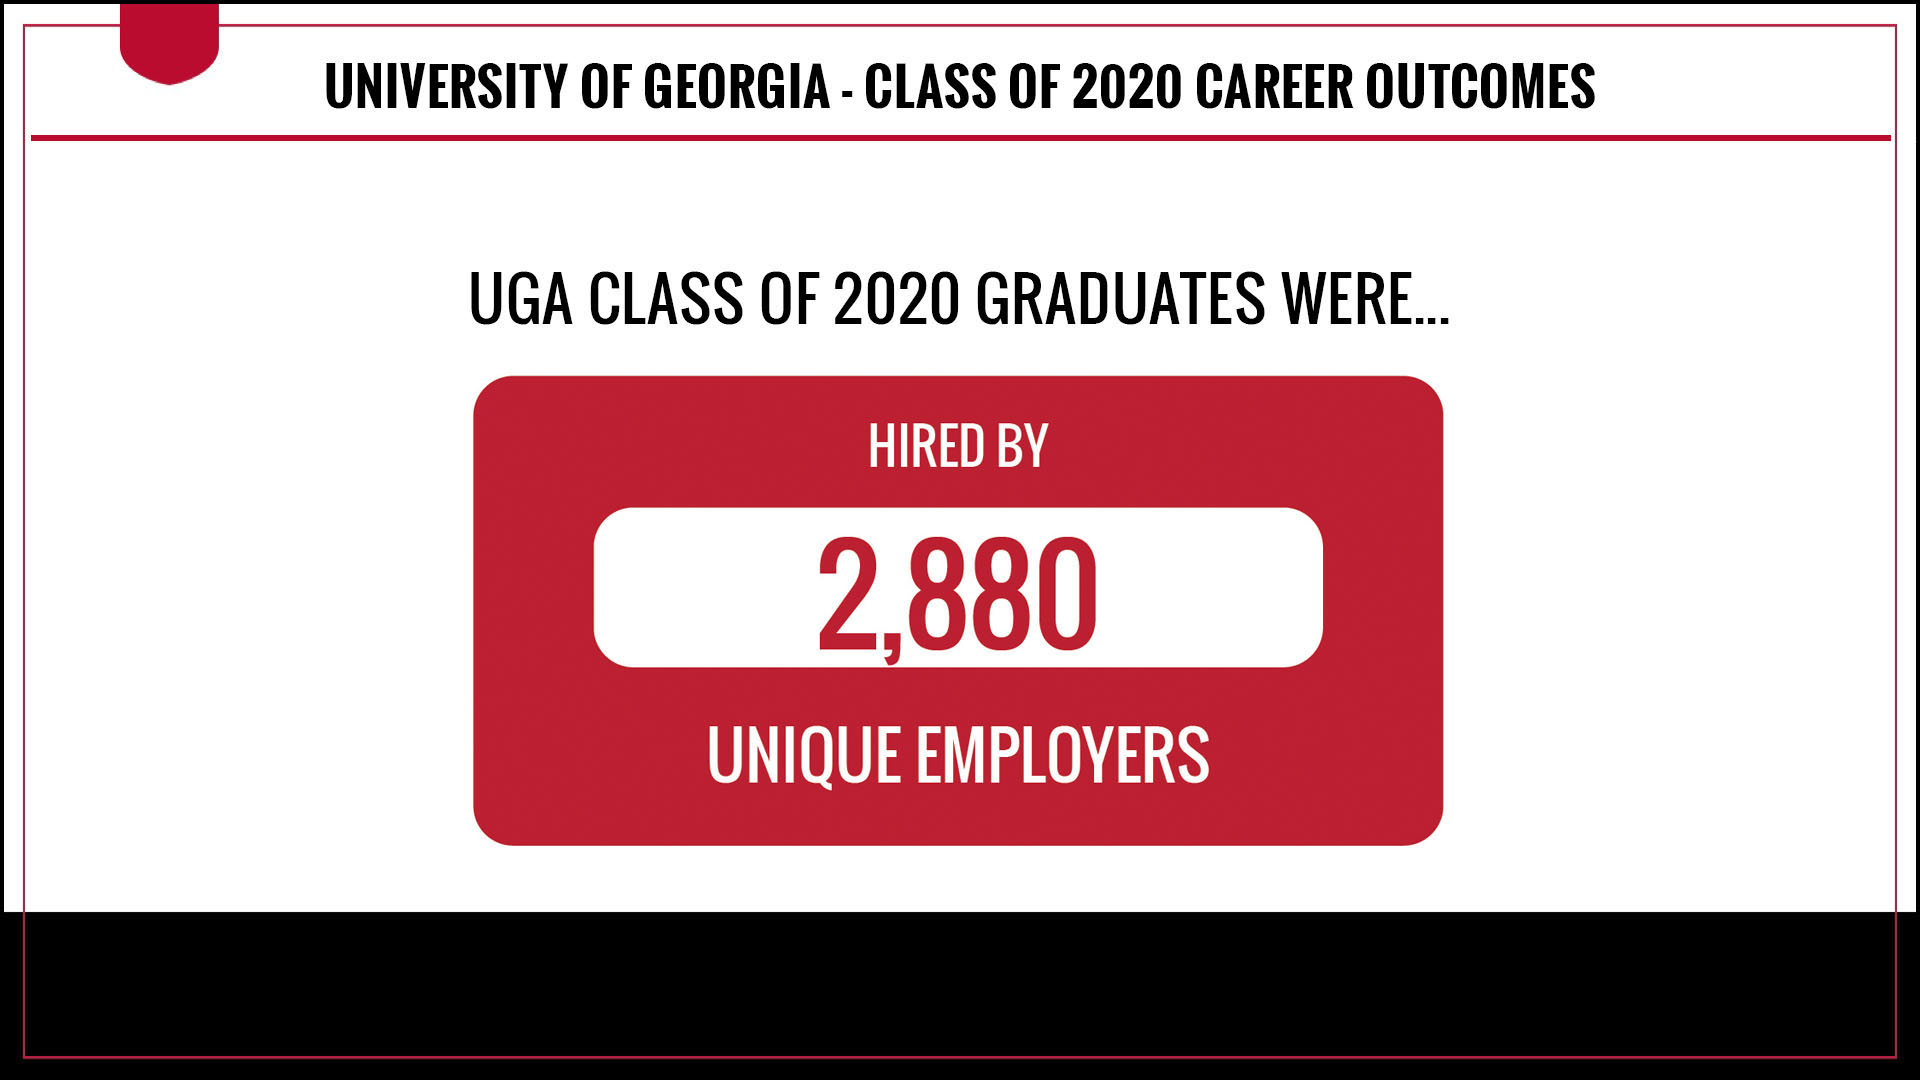 Class of 2020 graduates have been hired by 2880 unique employers